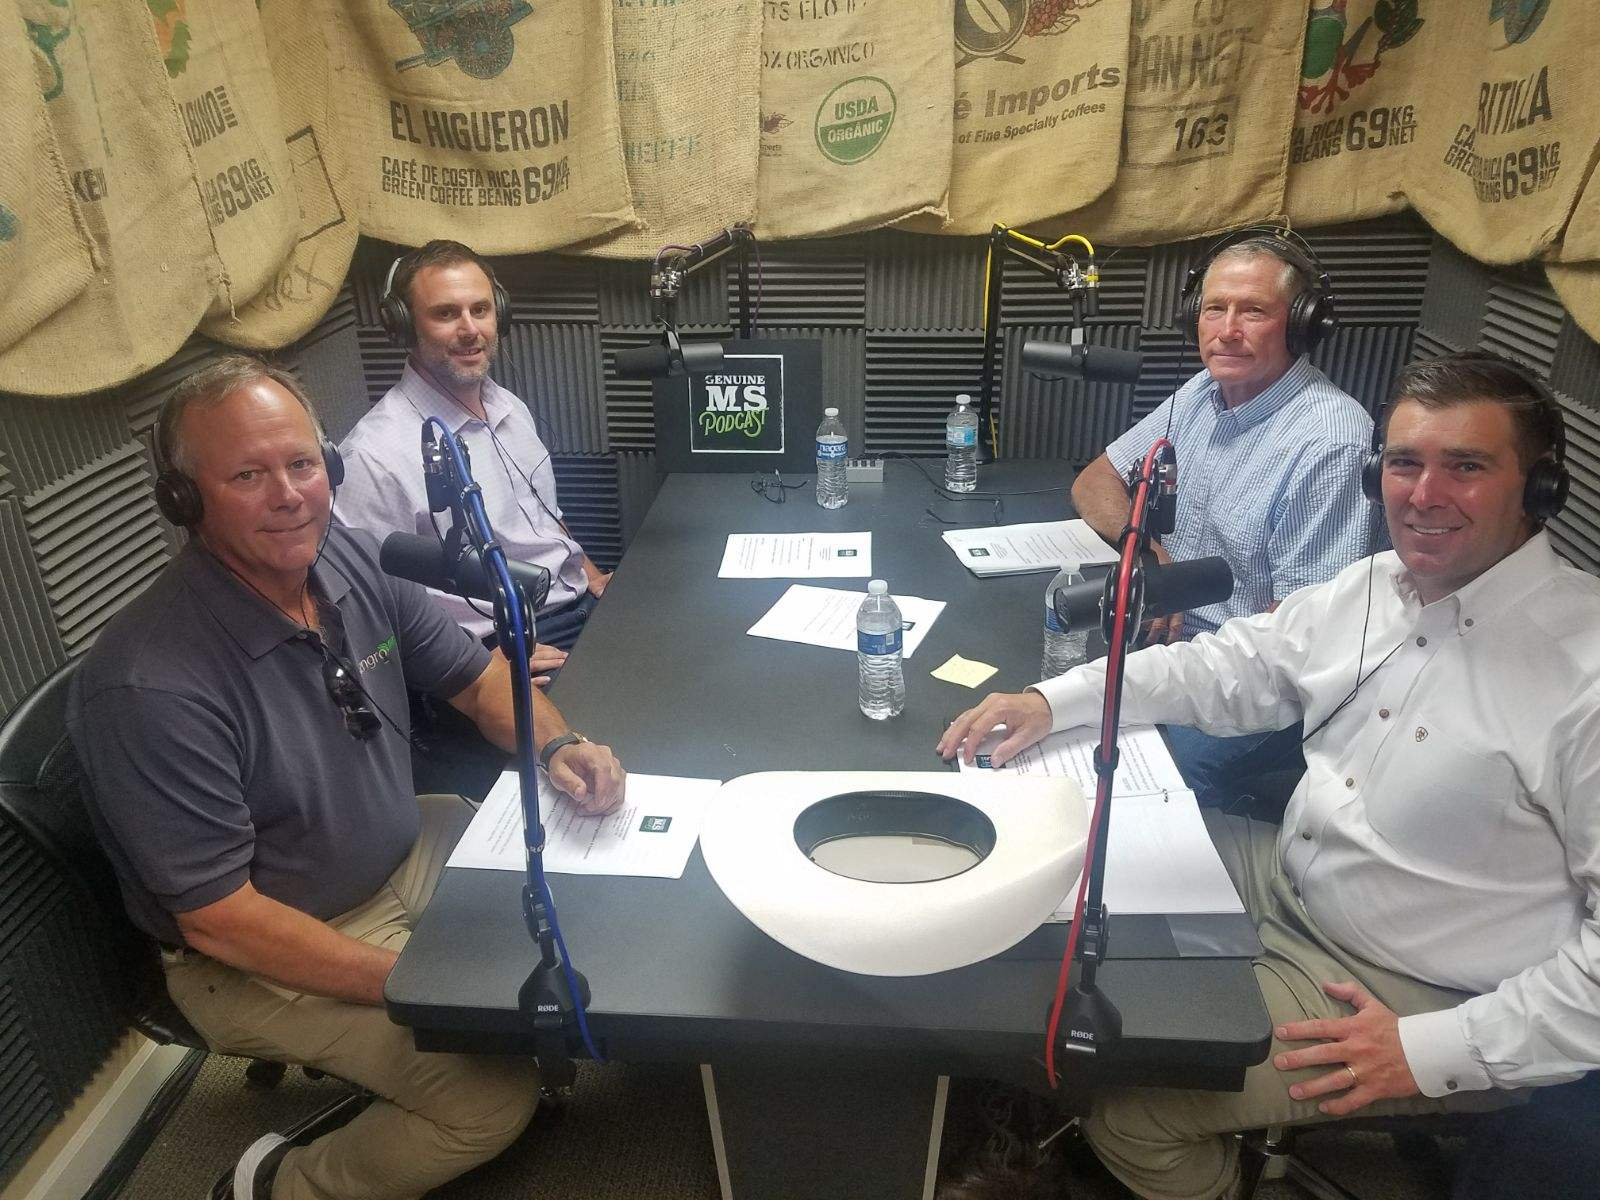 Brent Brasher, Andy Gipson, Matthew Summers, and Dennis Short recording Genuine MS Podcast Episode 8: Leaders in the Field